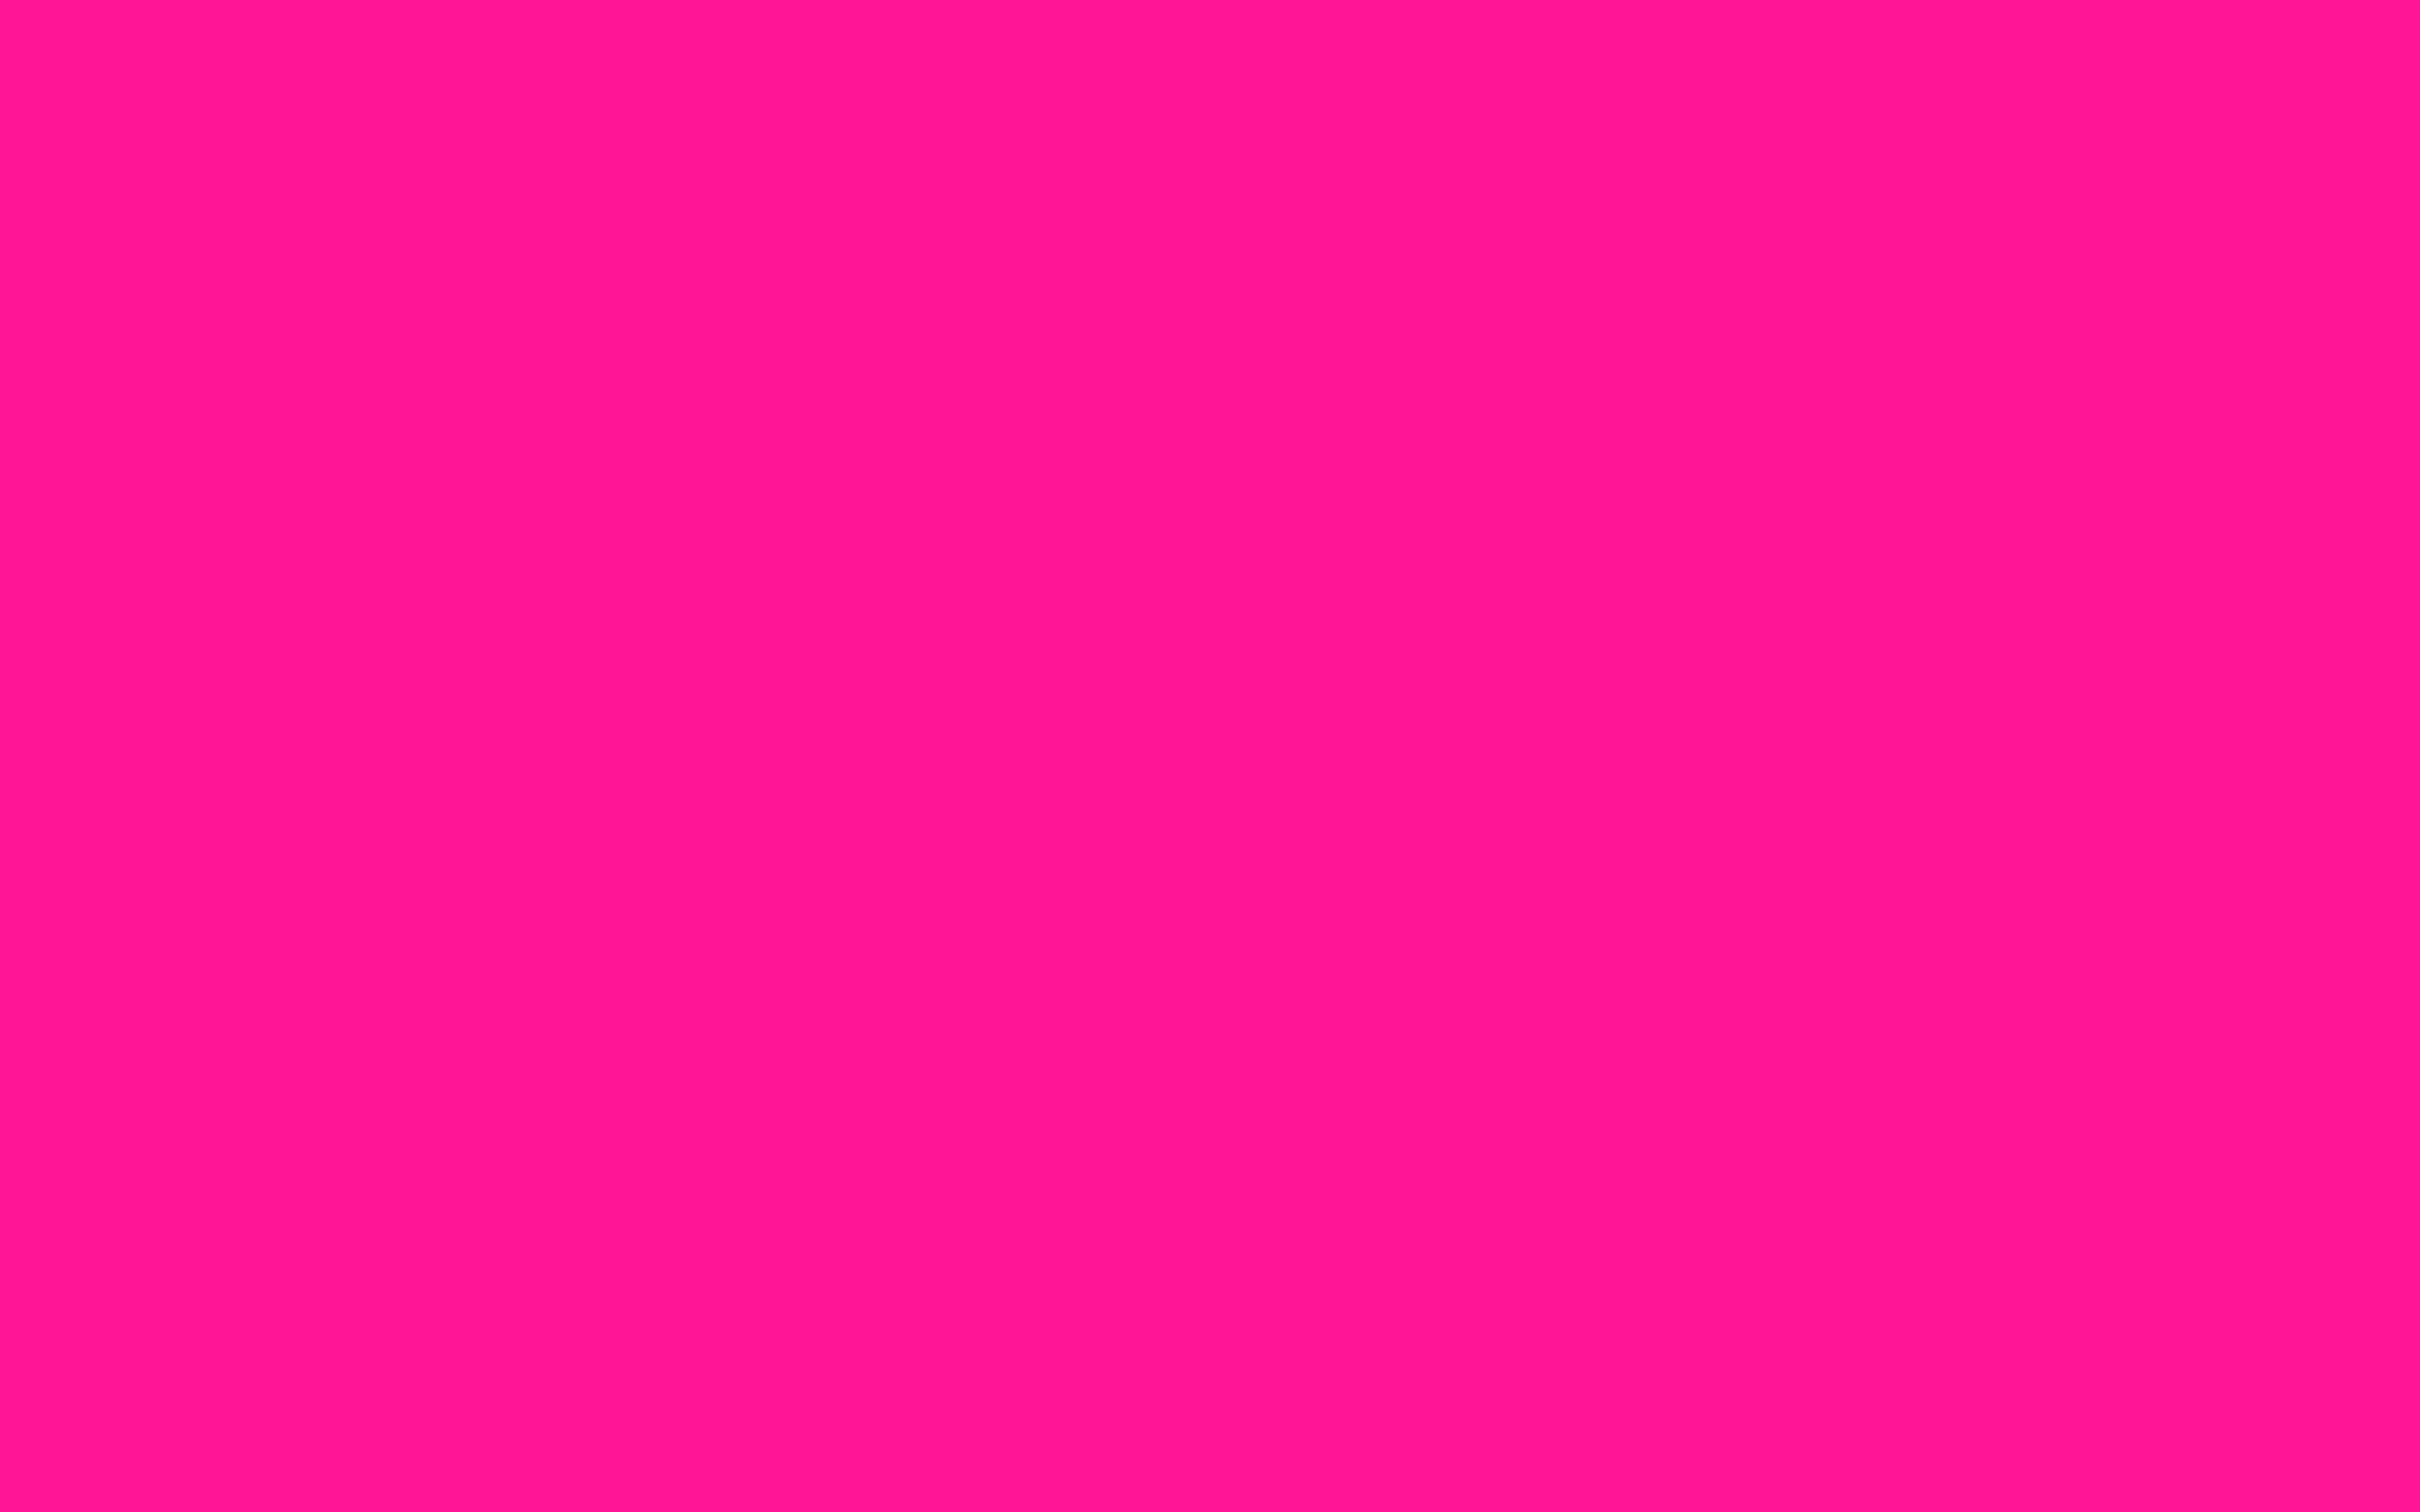 Fluorescent Pink Solid Color